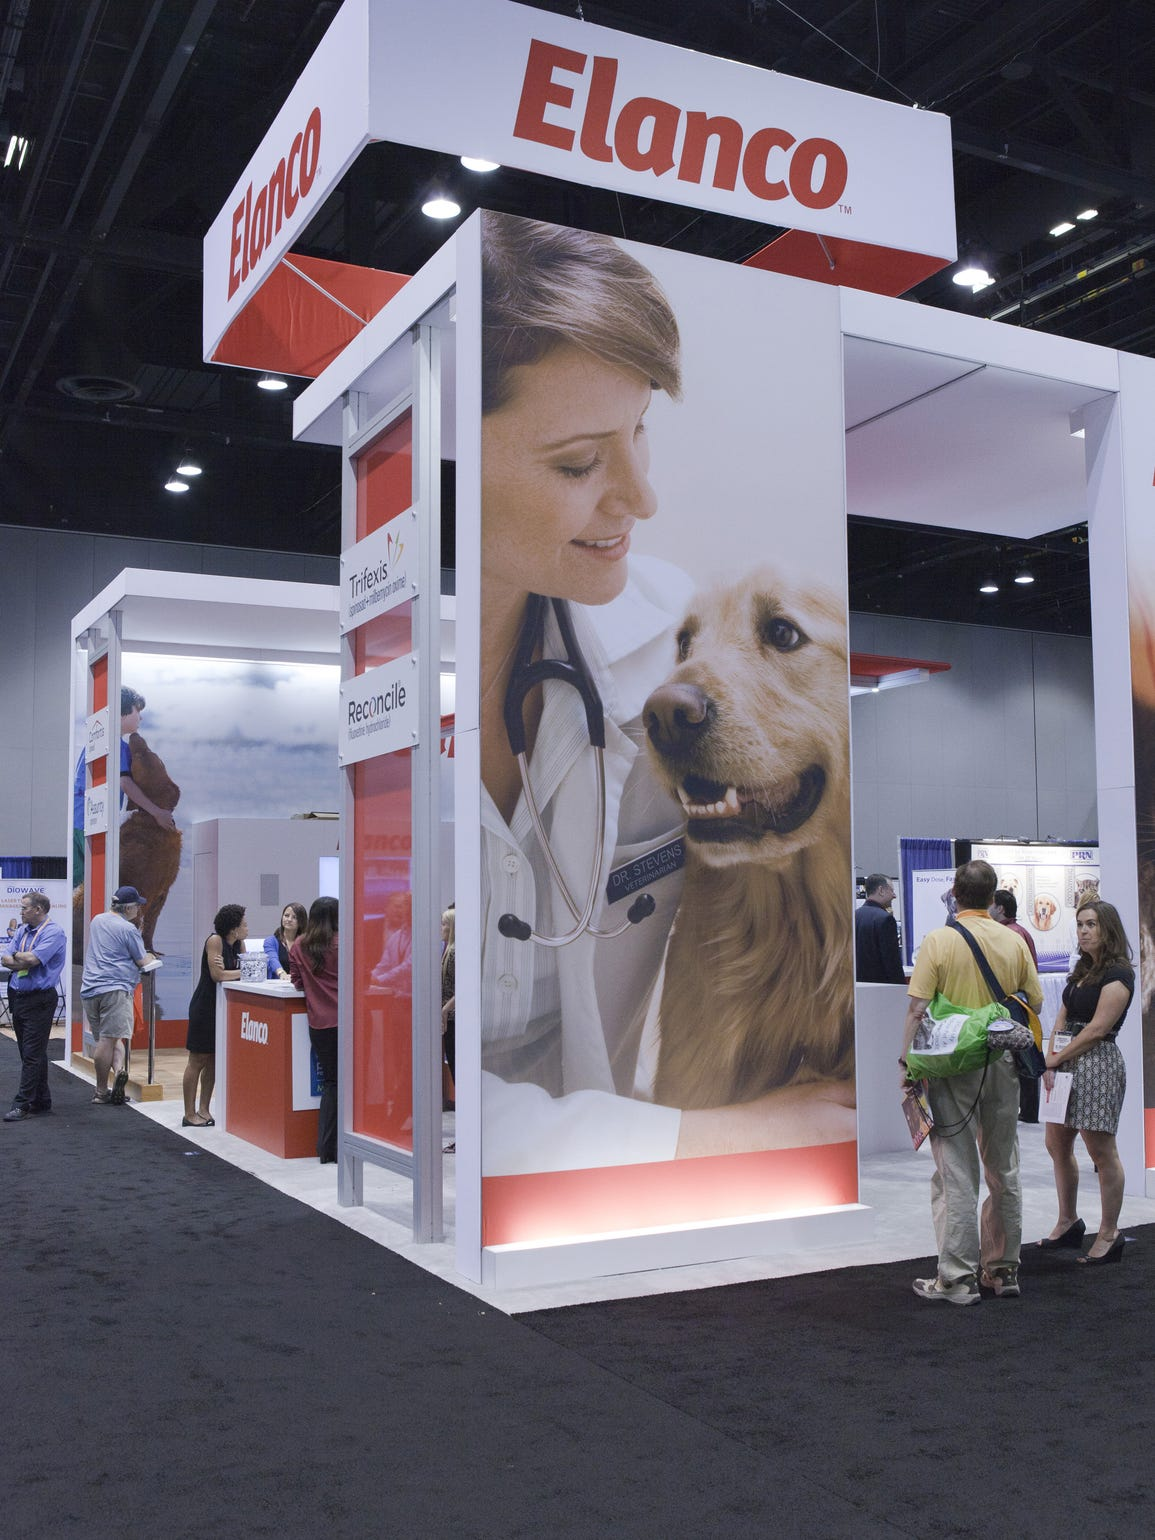 The Elanco booth at the American Veterinary Medical